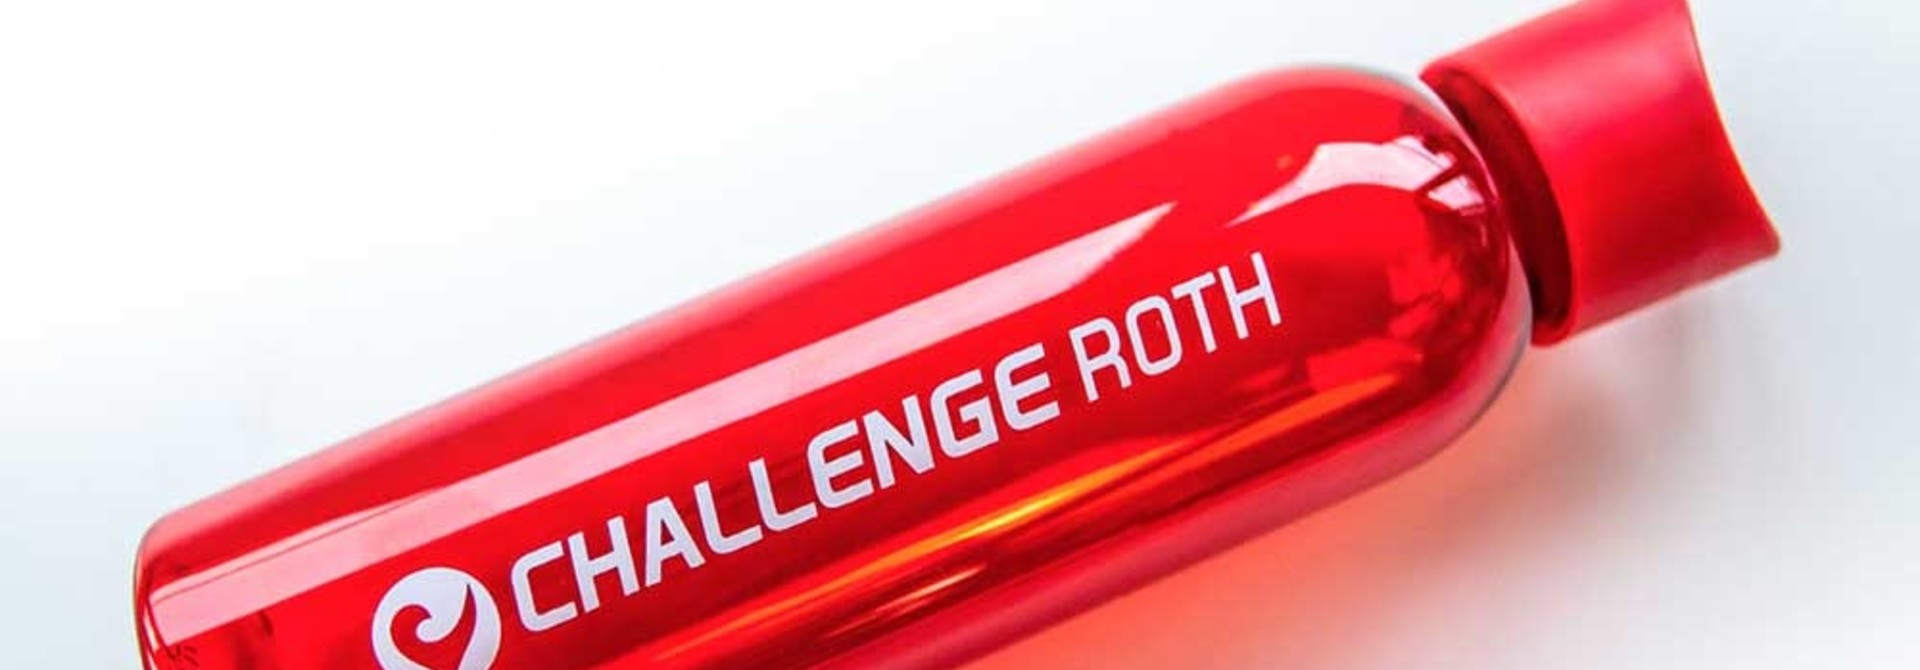 Bottle Challenge Roth 650ml